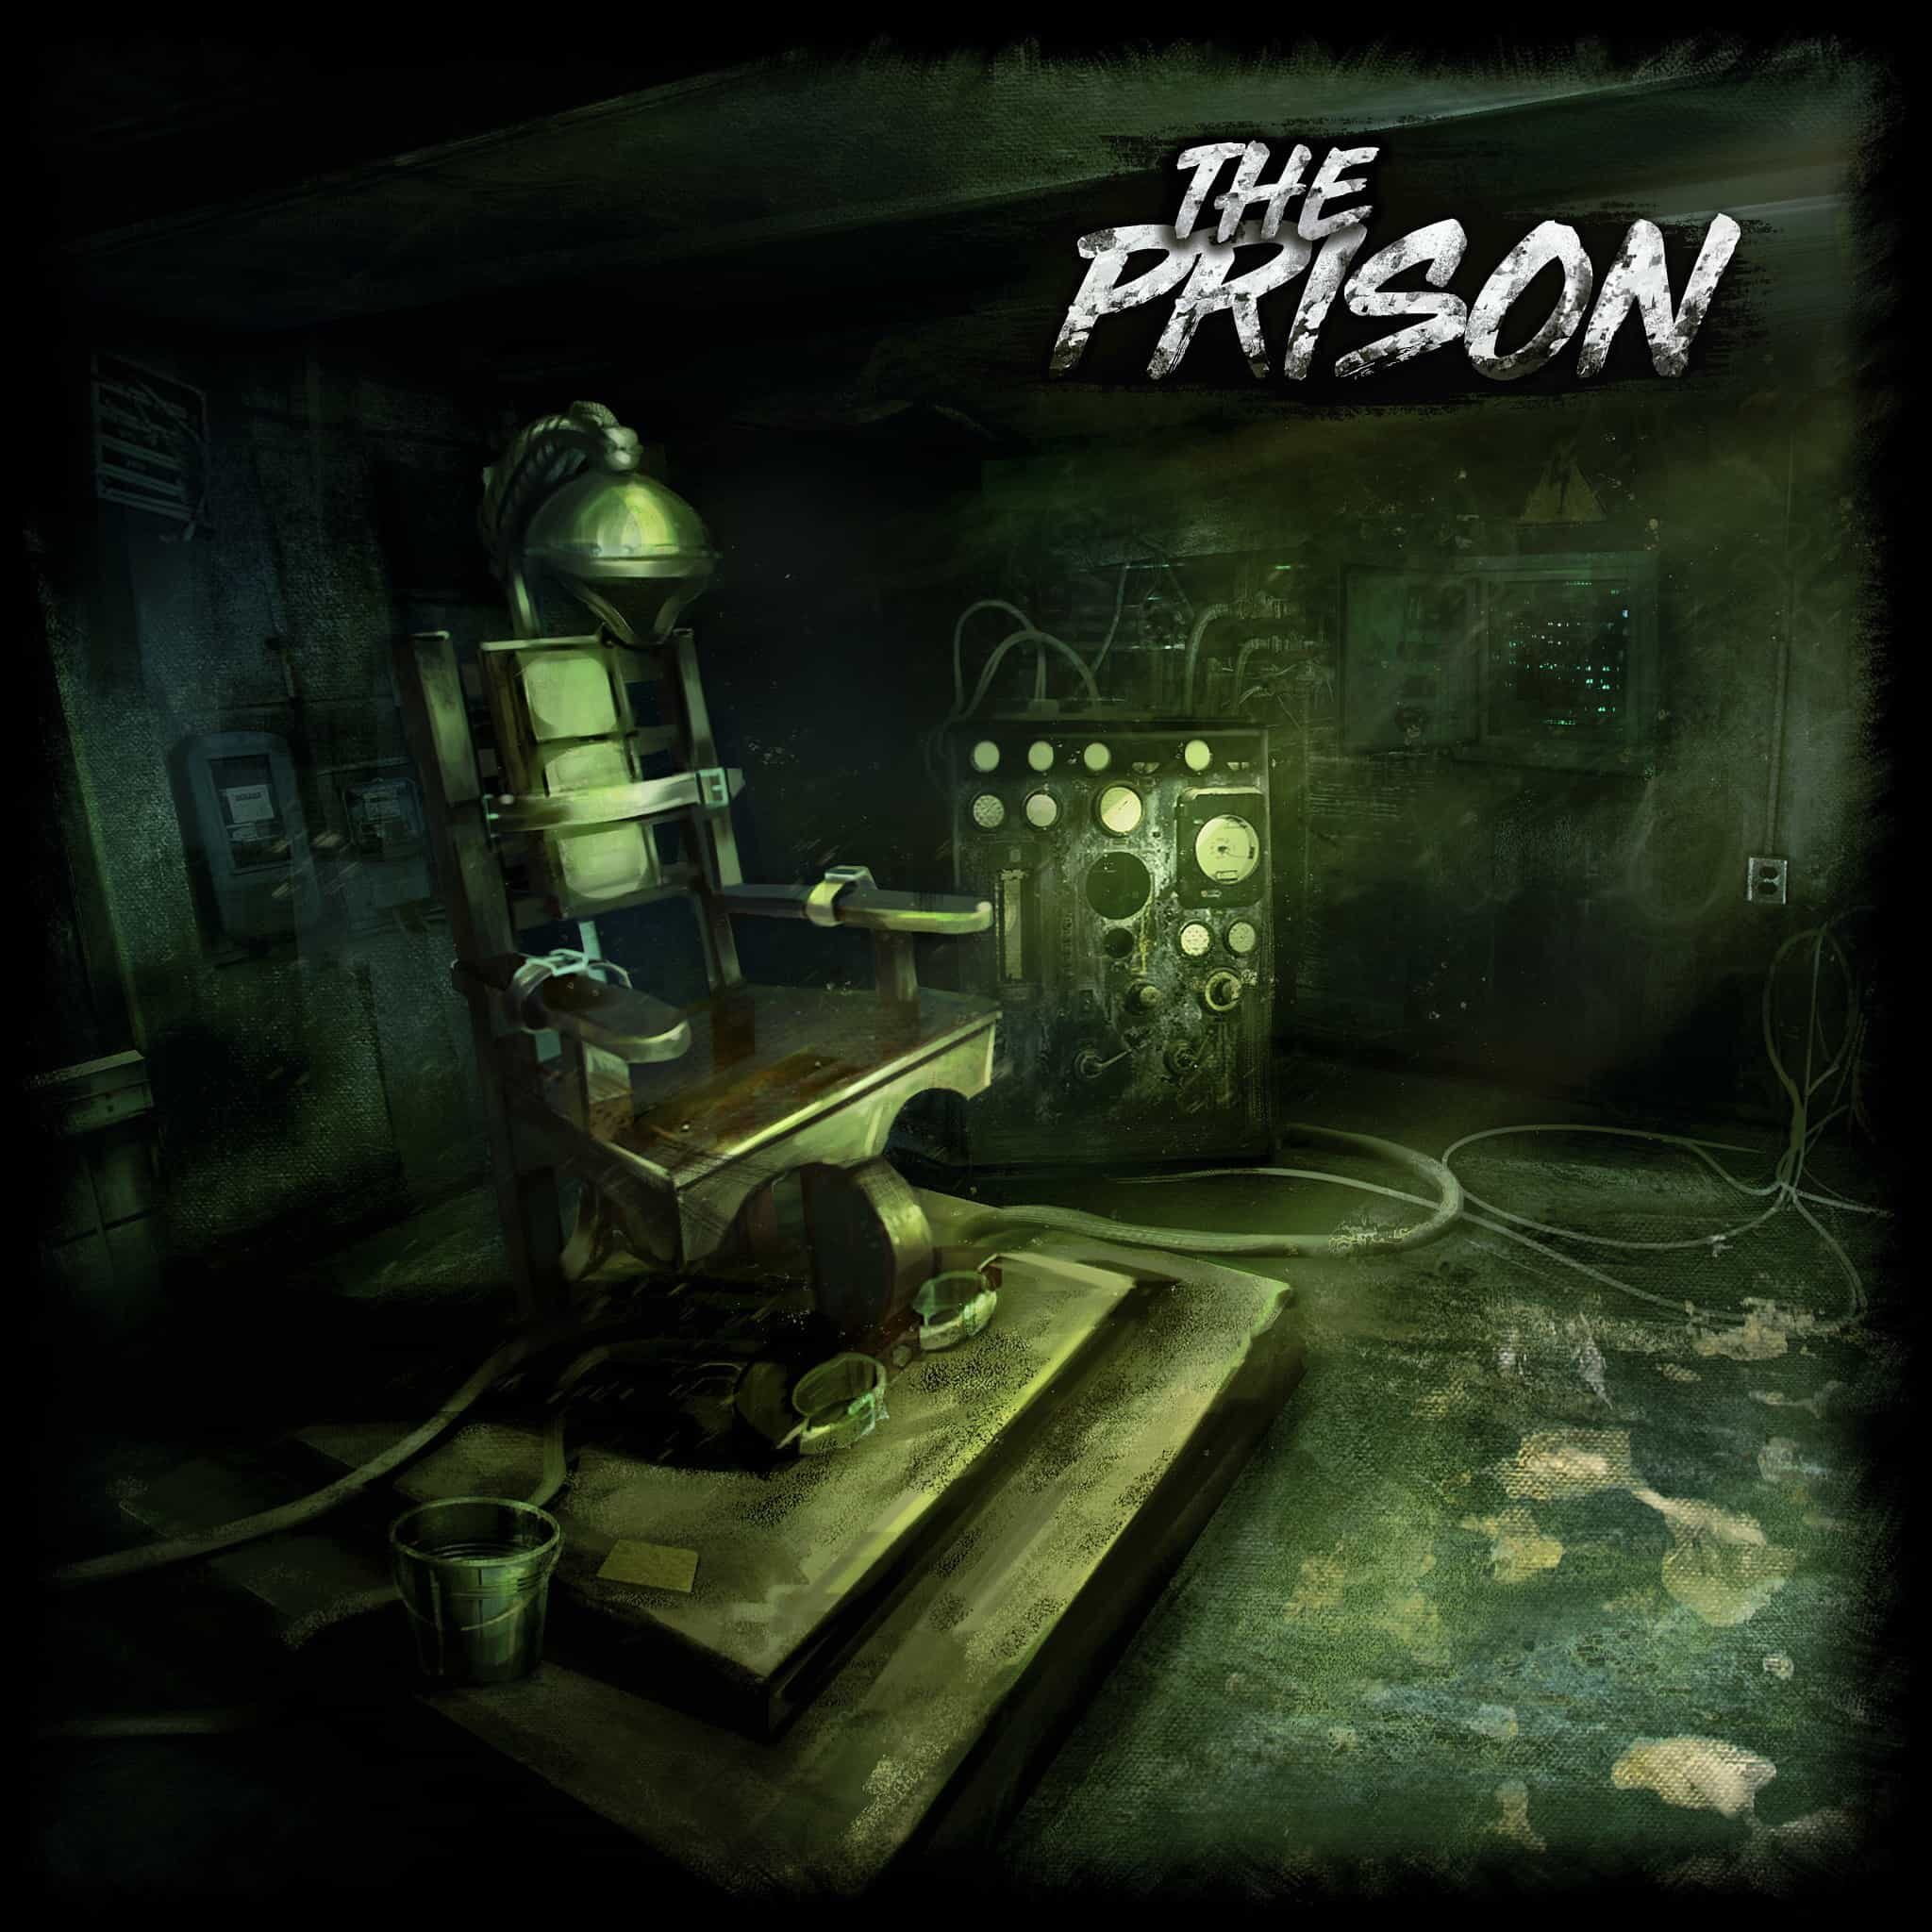 The Prison VR Escape Room